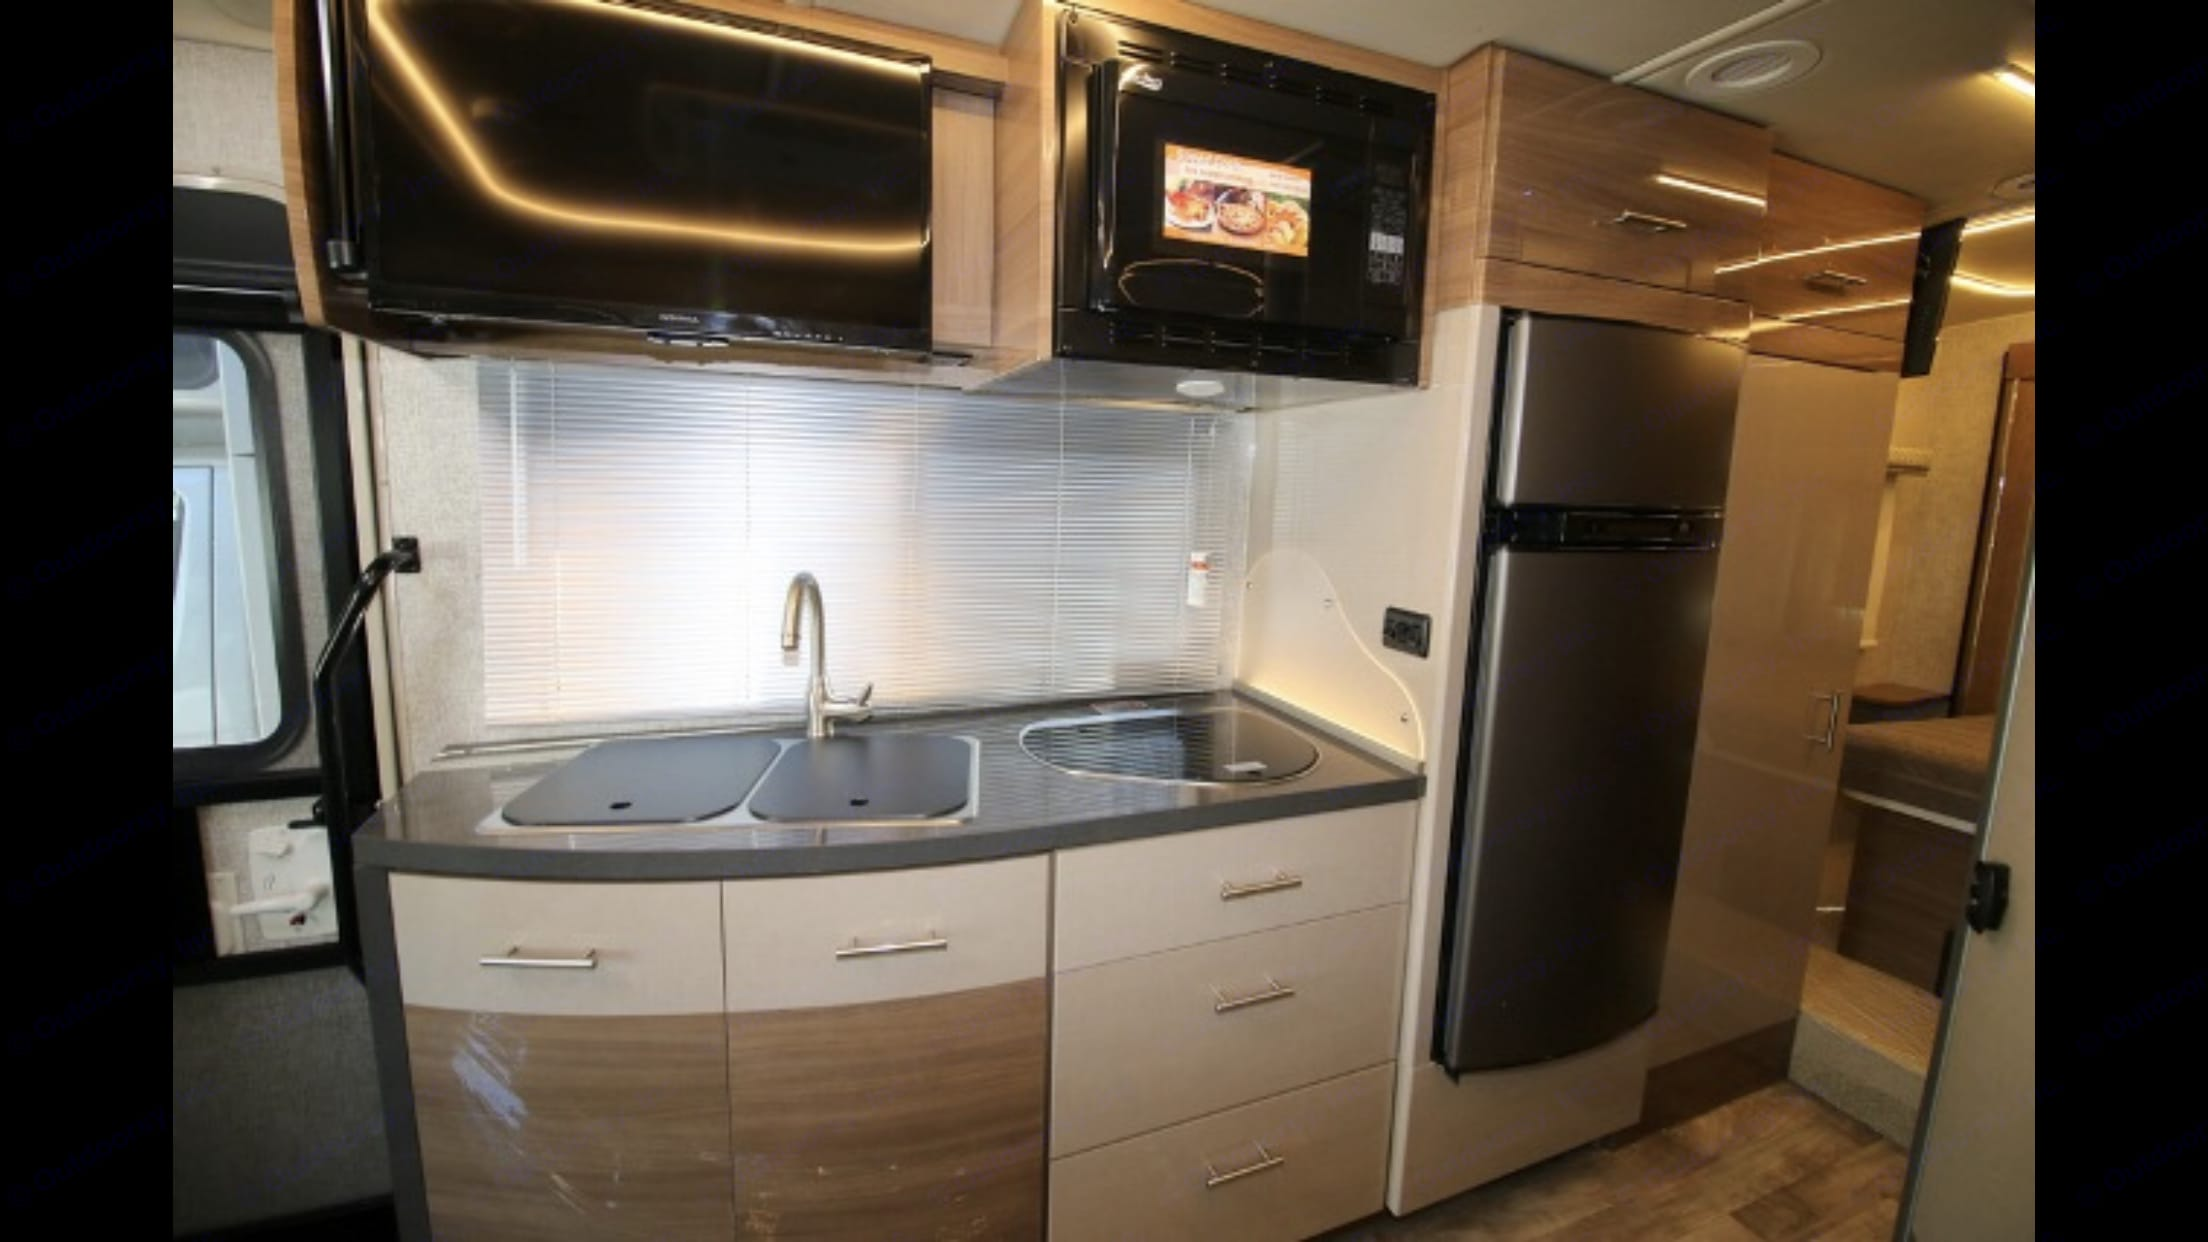 View of Kitchen sink and 2 burner propane stove TV and microwave -convection oven and Refrigerator Frezzer wardrobe closet view. Winnebago Navion 24G 2017